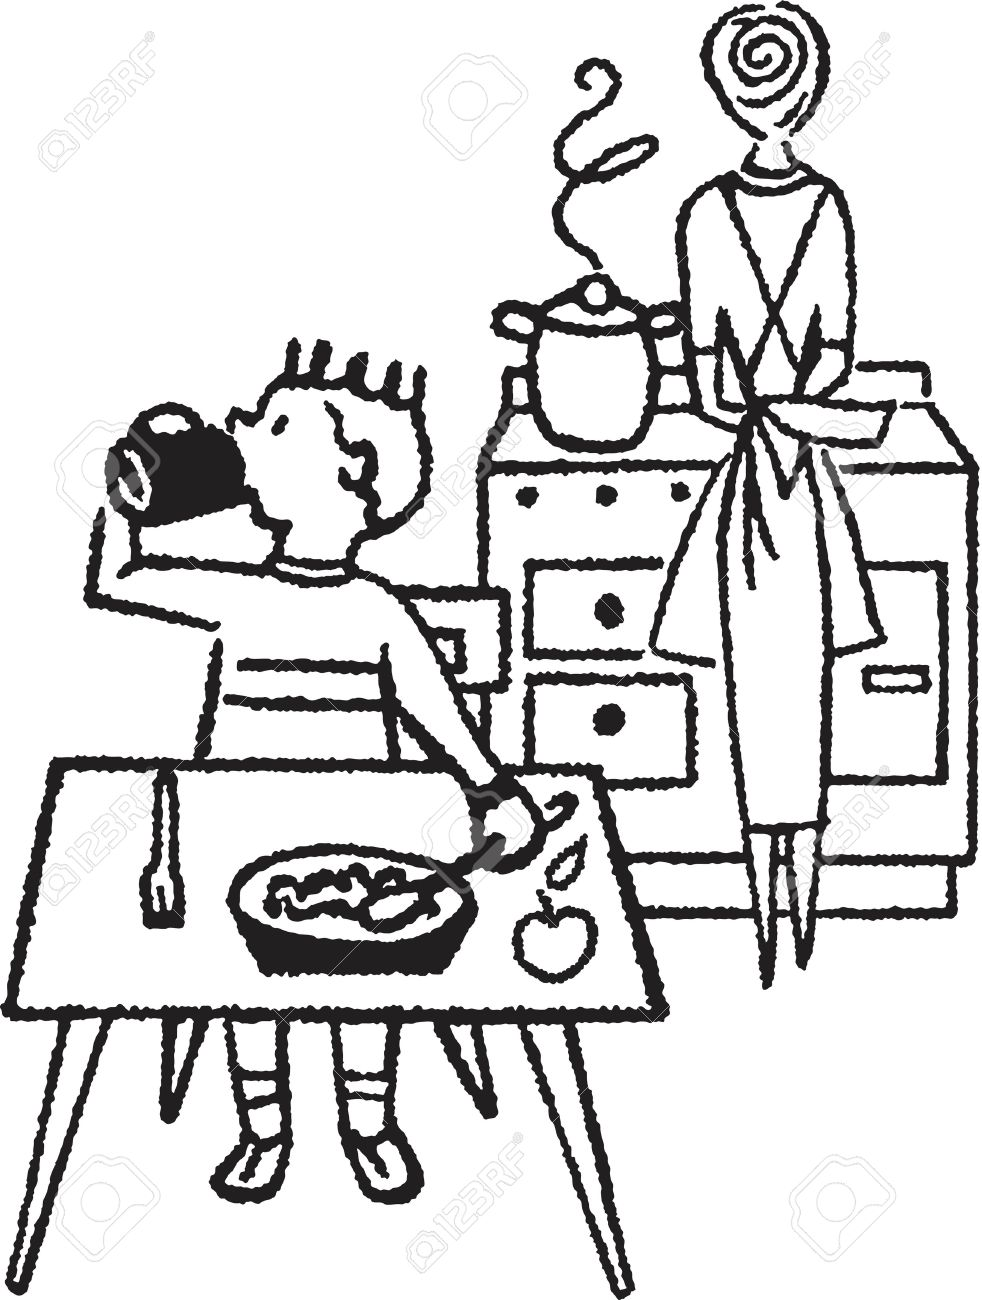 kitchen table clipart black and white. a black and white version of young boy eating at table with his mother kitchen clipart e